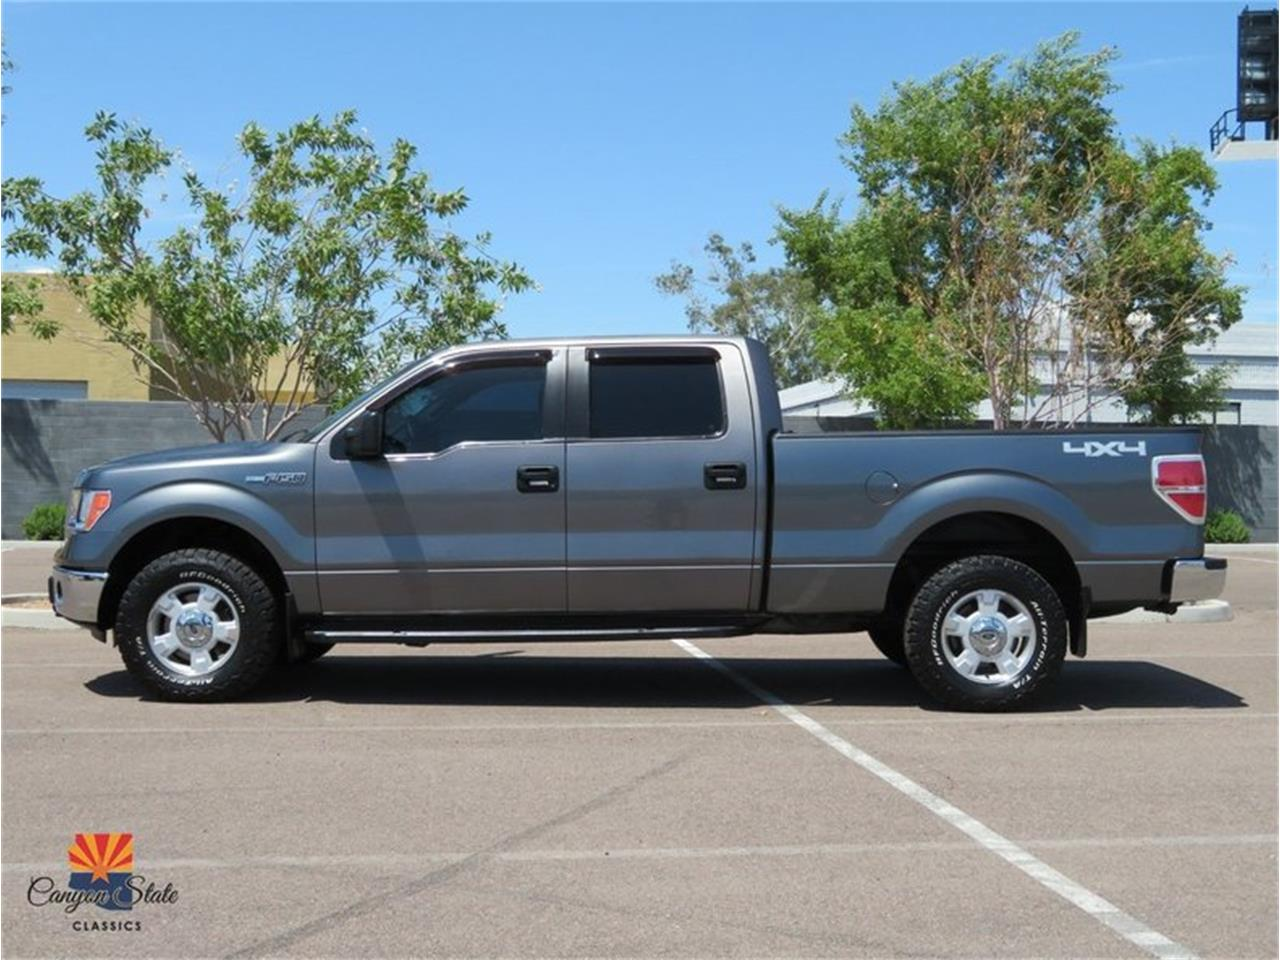 2014 Ford F150 for sale in Tempe, AZ – photo 7